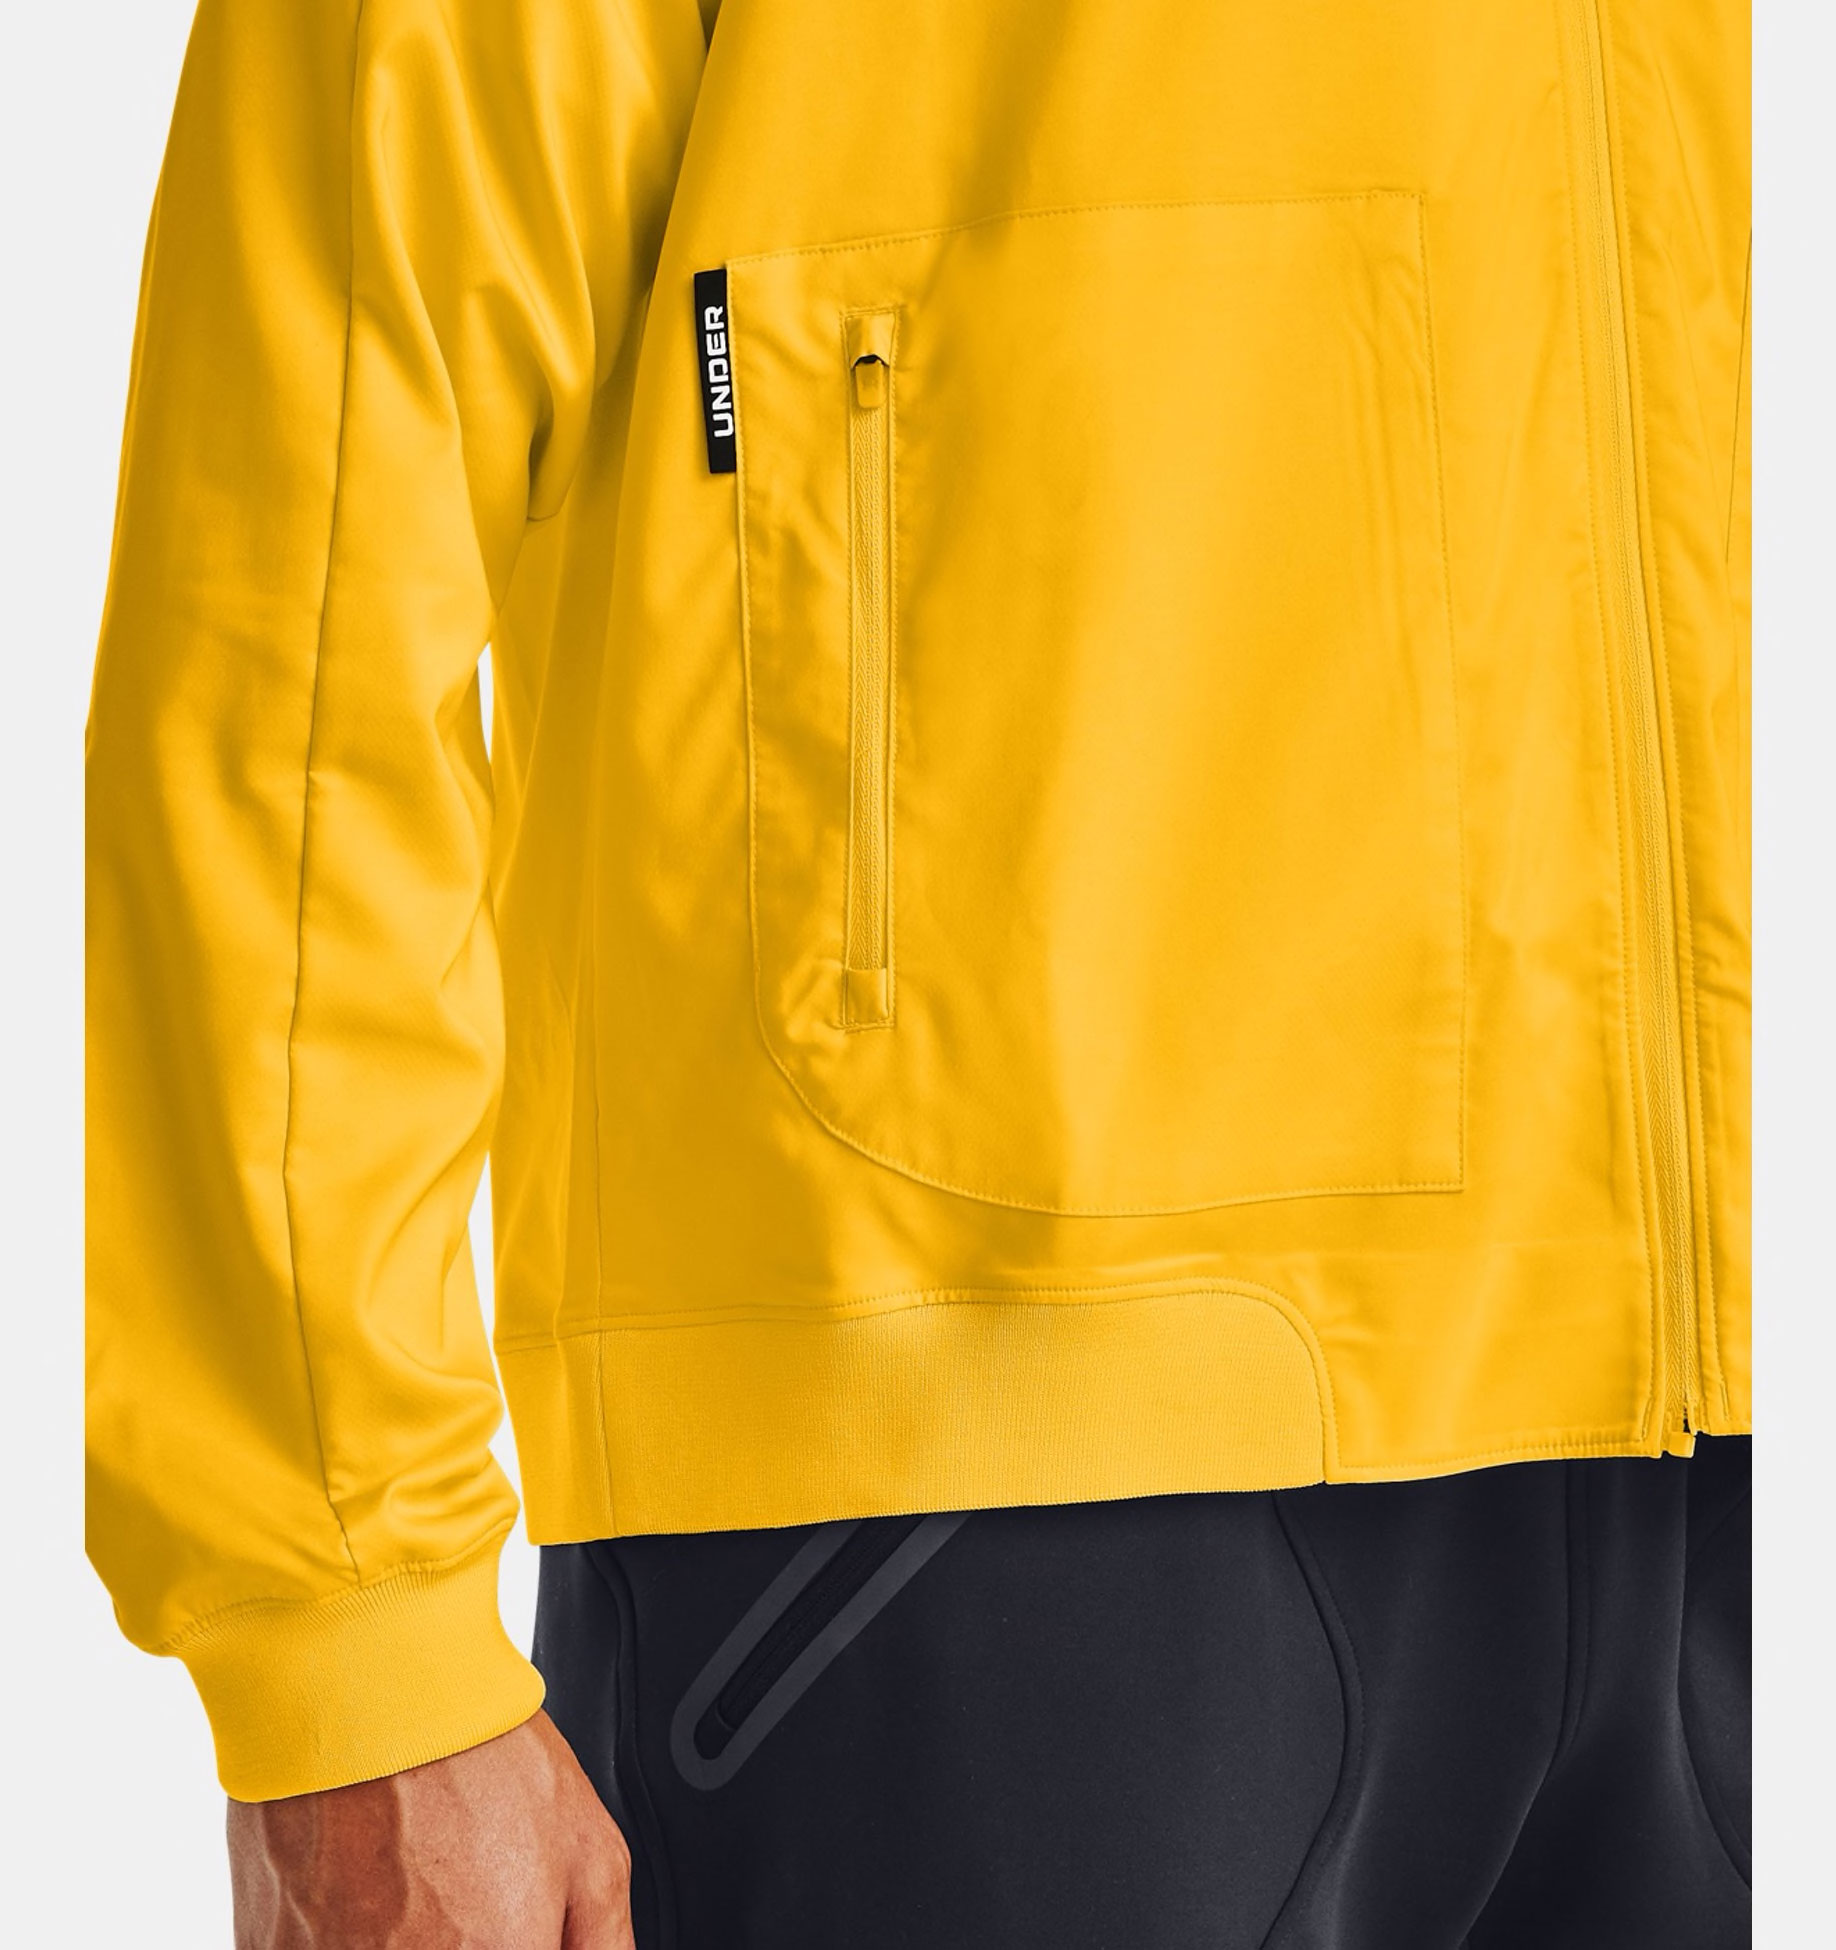 curry-8-jacket-gold-yellow-2